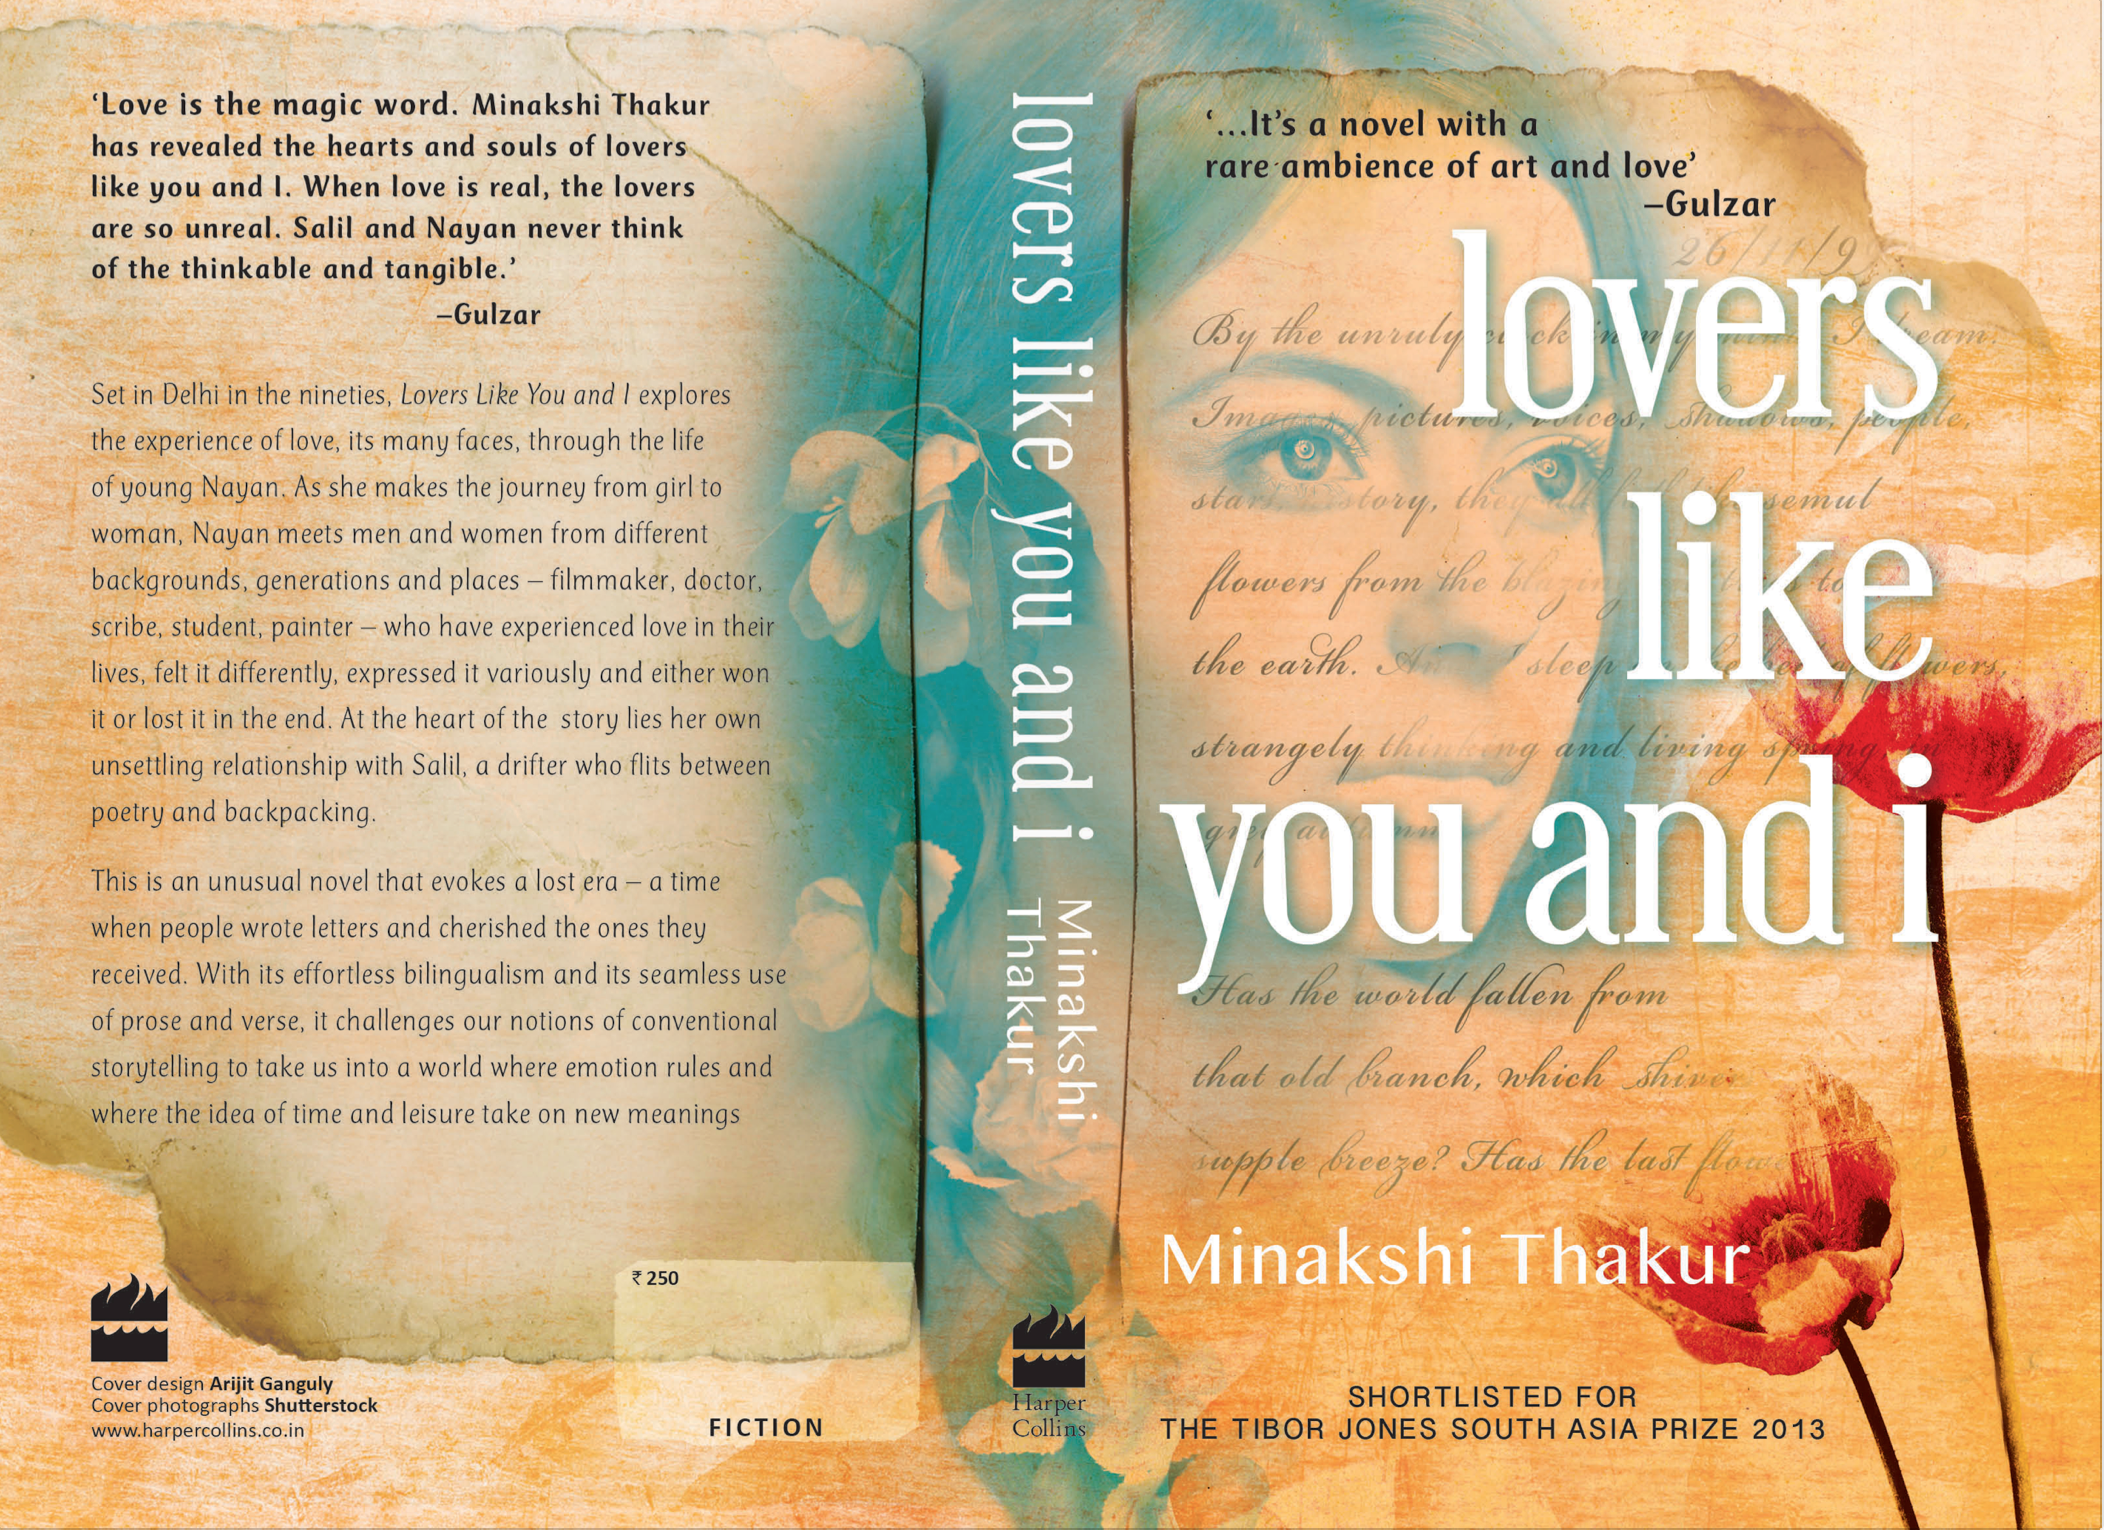 'Love is the magic word. Minakshi Thakur has revealed the hearts and souls of lovers like you and I. When love is real, the lovers are so unreal. Salil and Nayan never think of the thinkable and tangible. It's a novel with a rare ambience of art and love.' – Gulzar